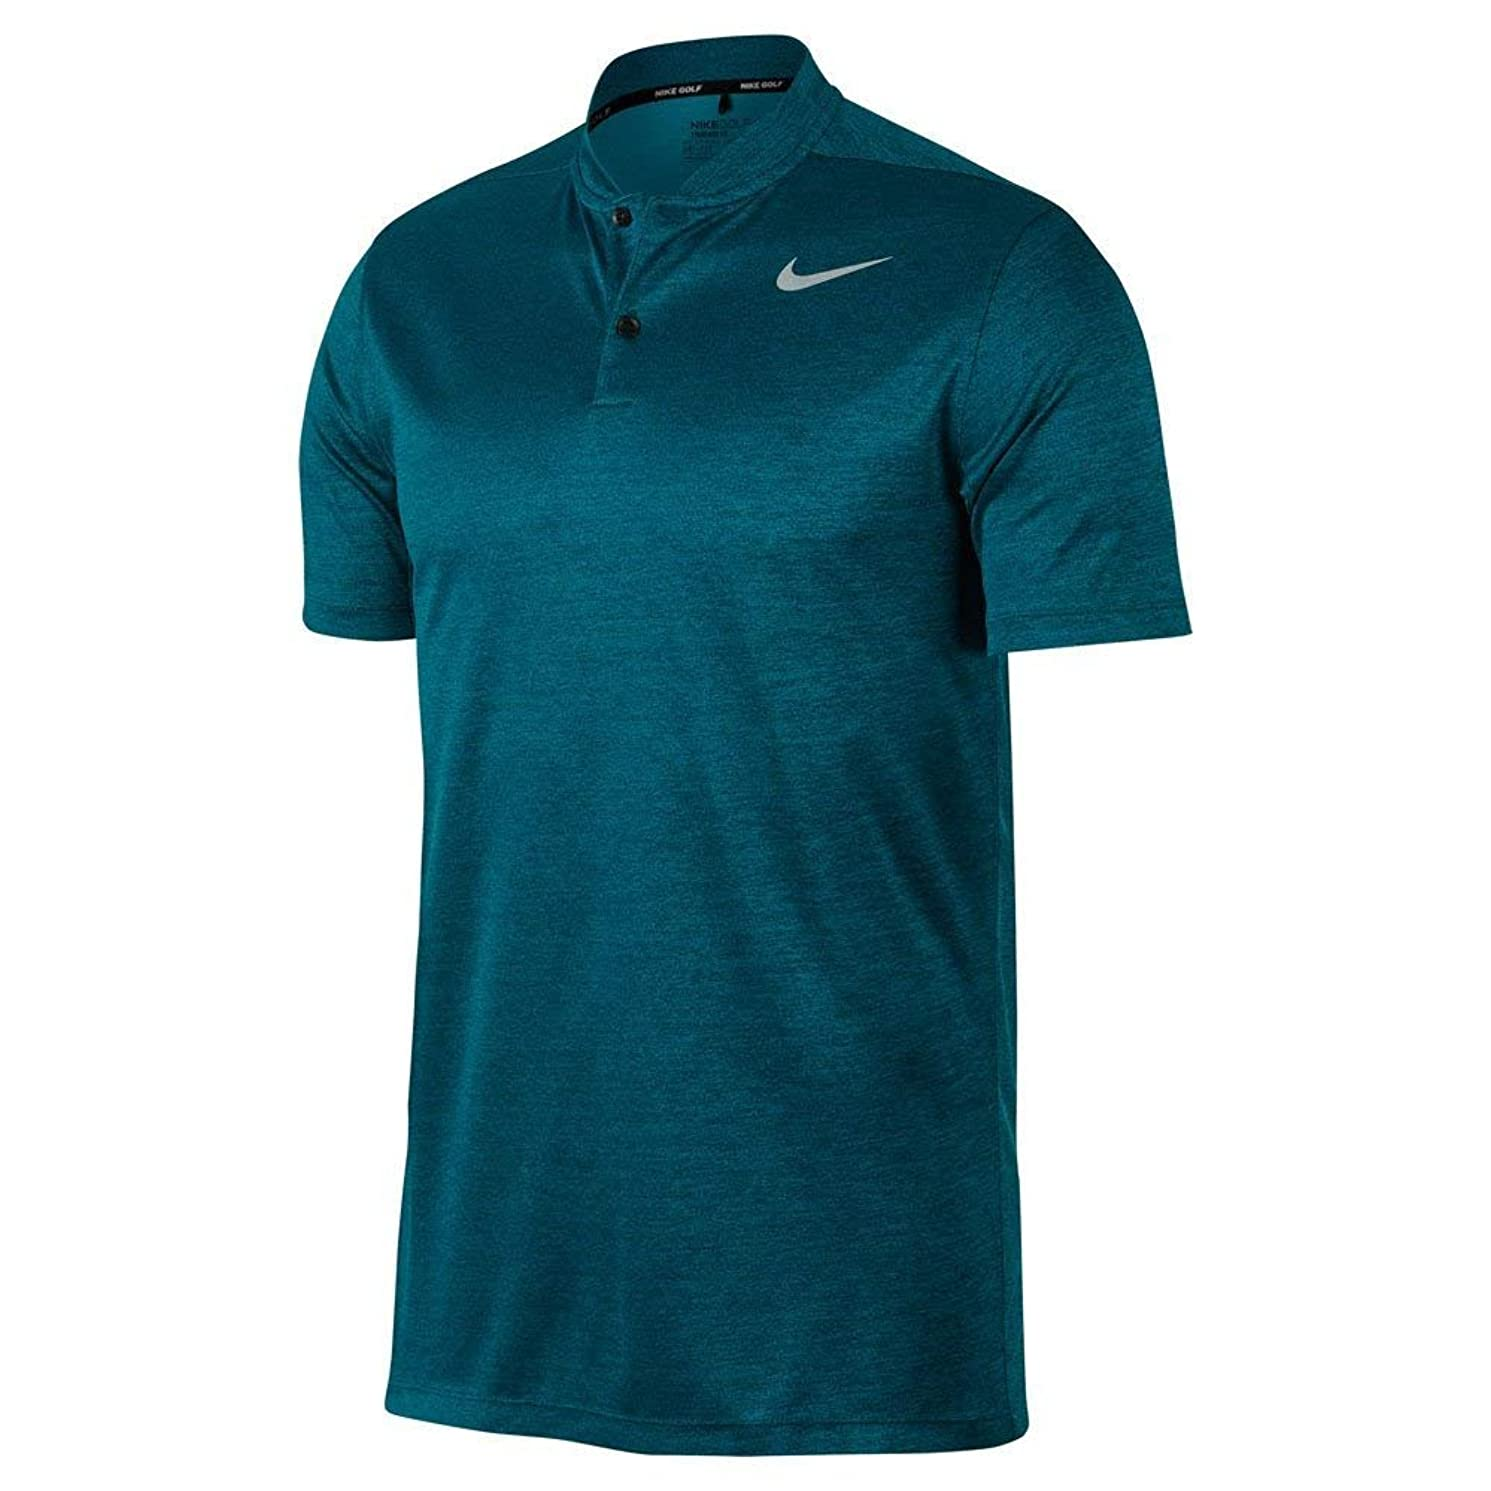 NIKE Dry Fit Heather Blade Golf Polo 2017